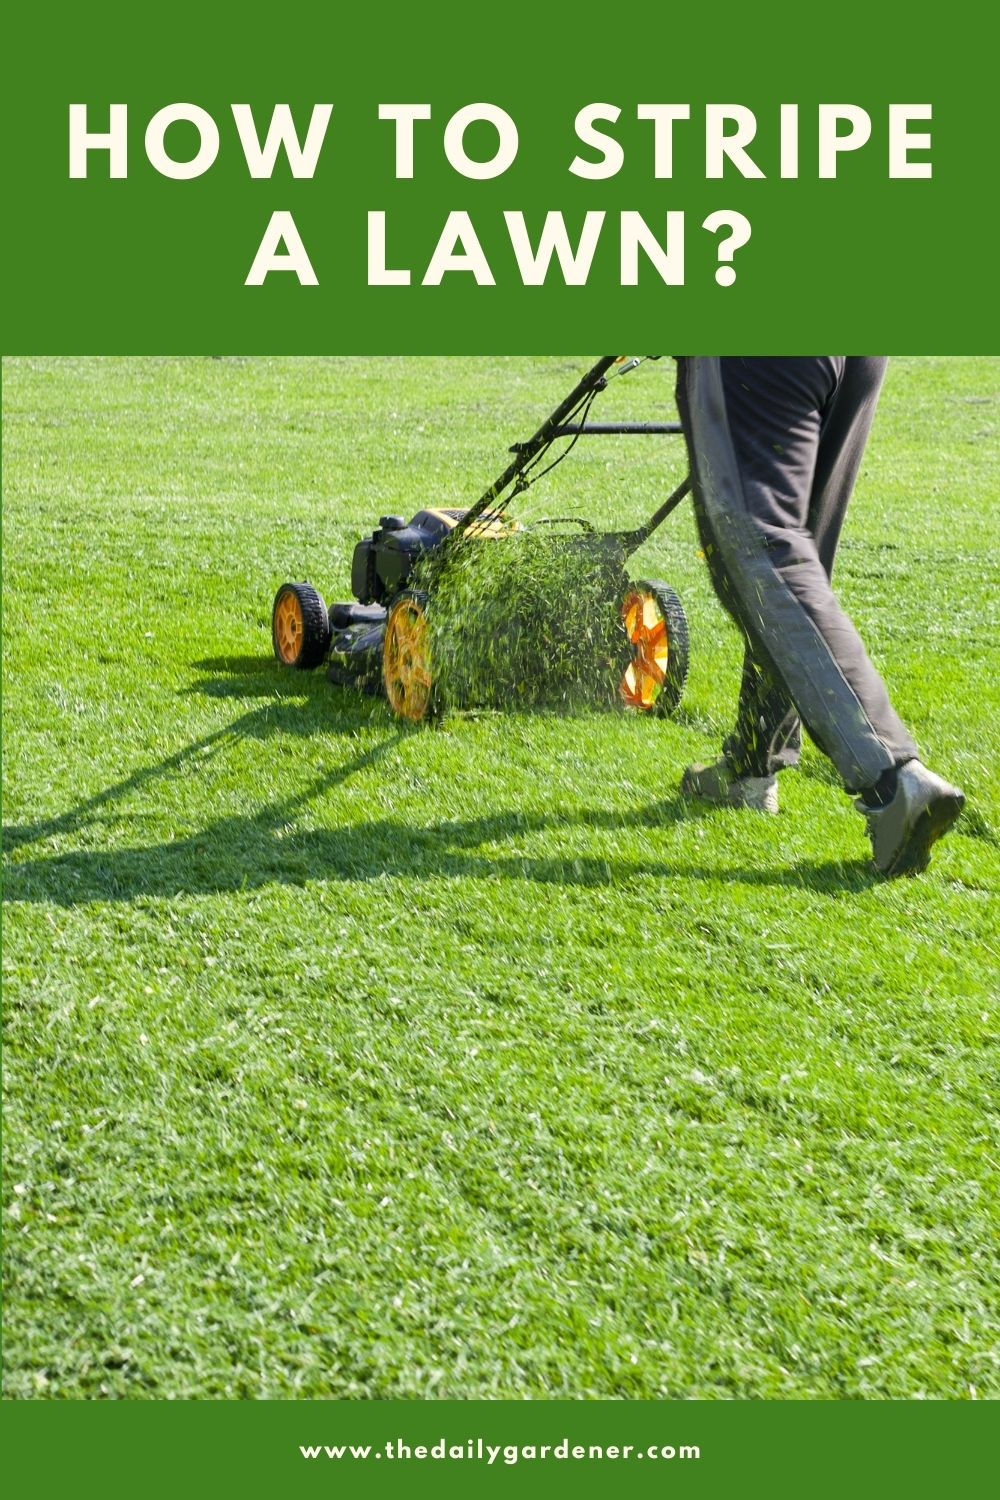 How to Stripe a Lawn 2